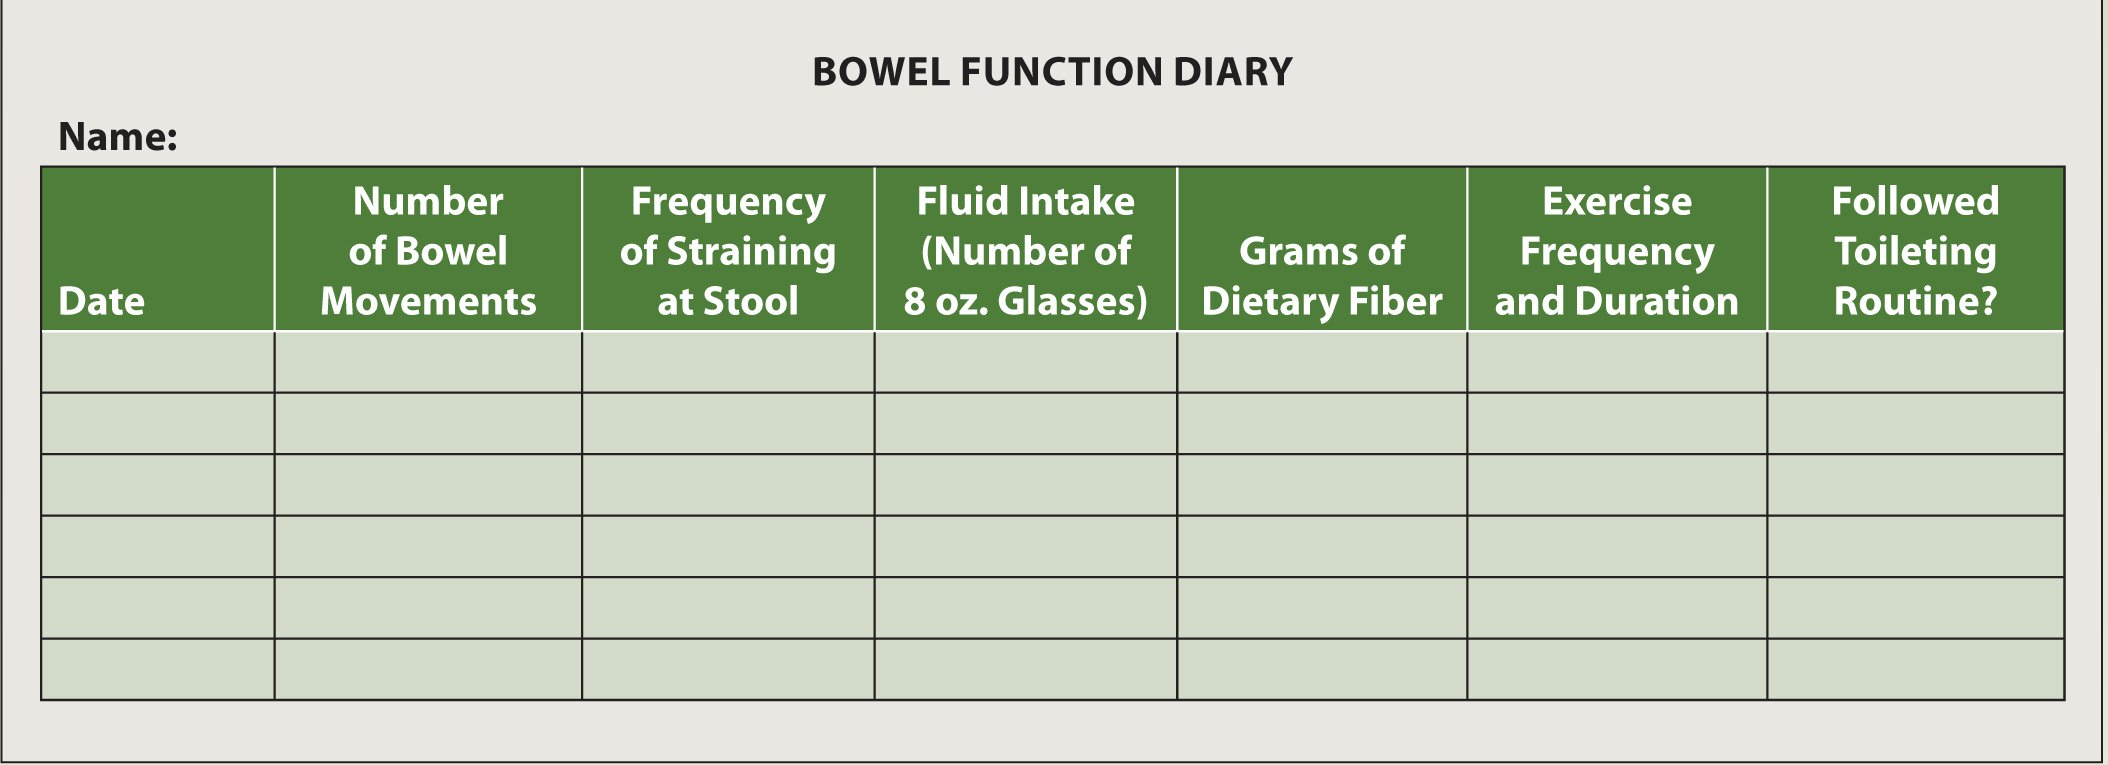 Bowel Function Diary to document the success of the constipation management plan.